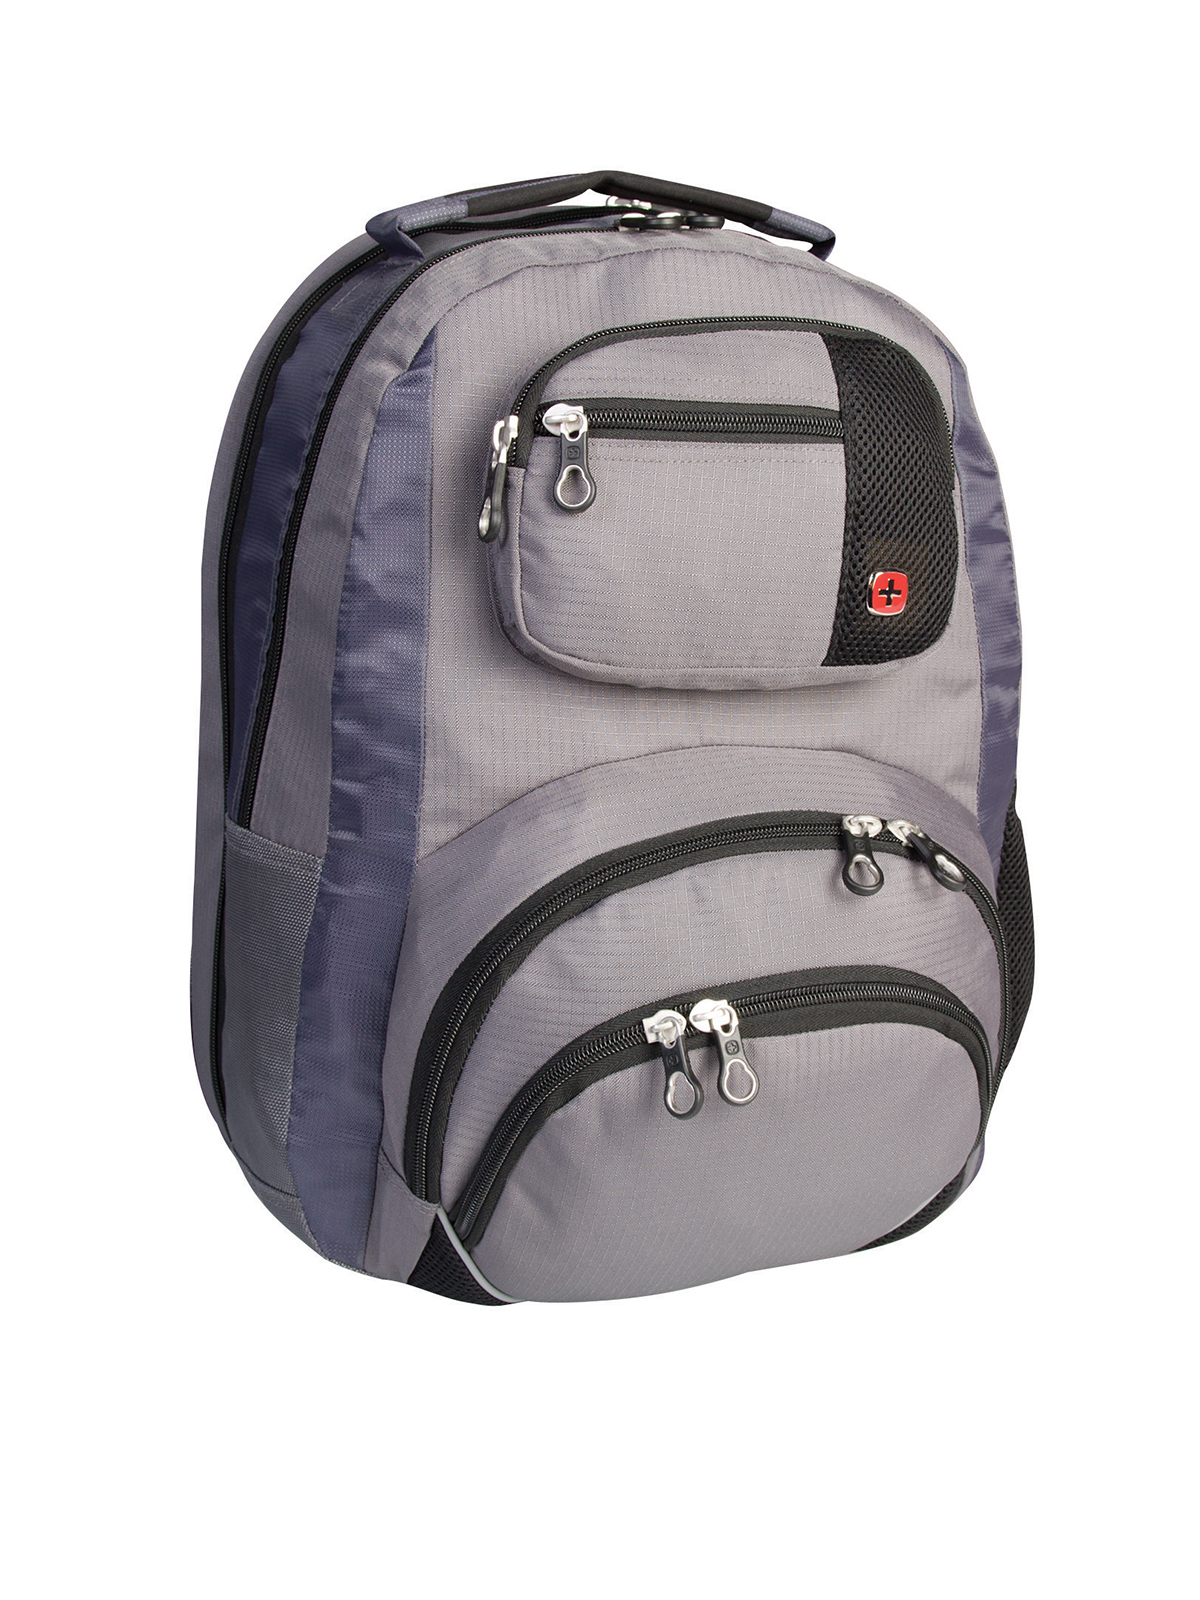 Swiss Gear Backpack Fits 15 6 Quot Laptop Holiday